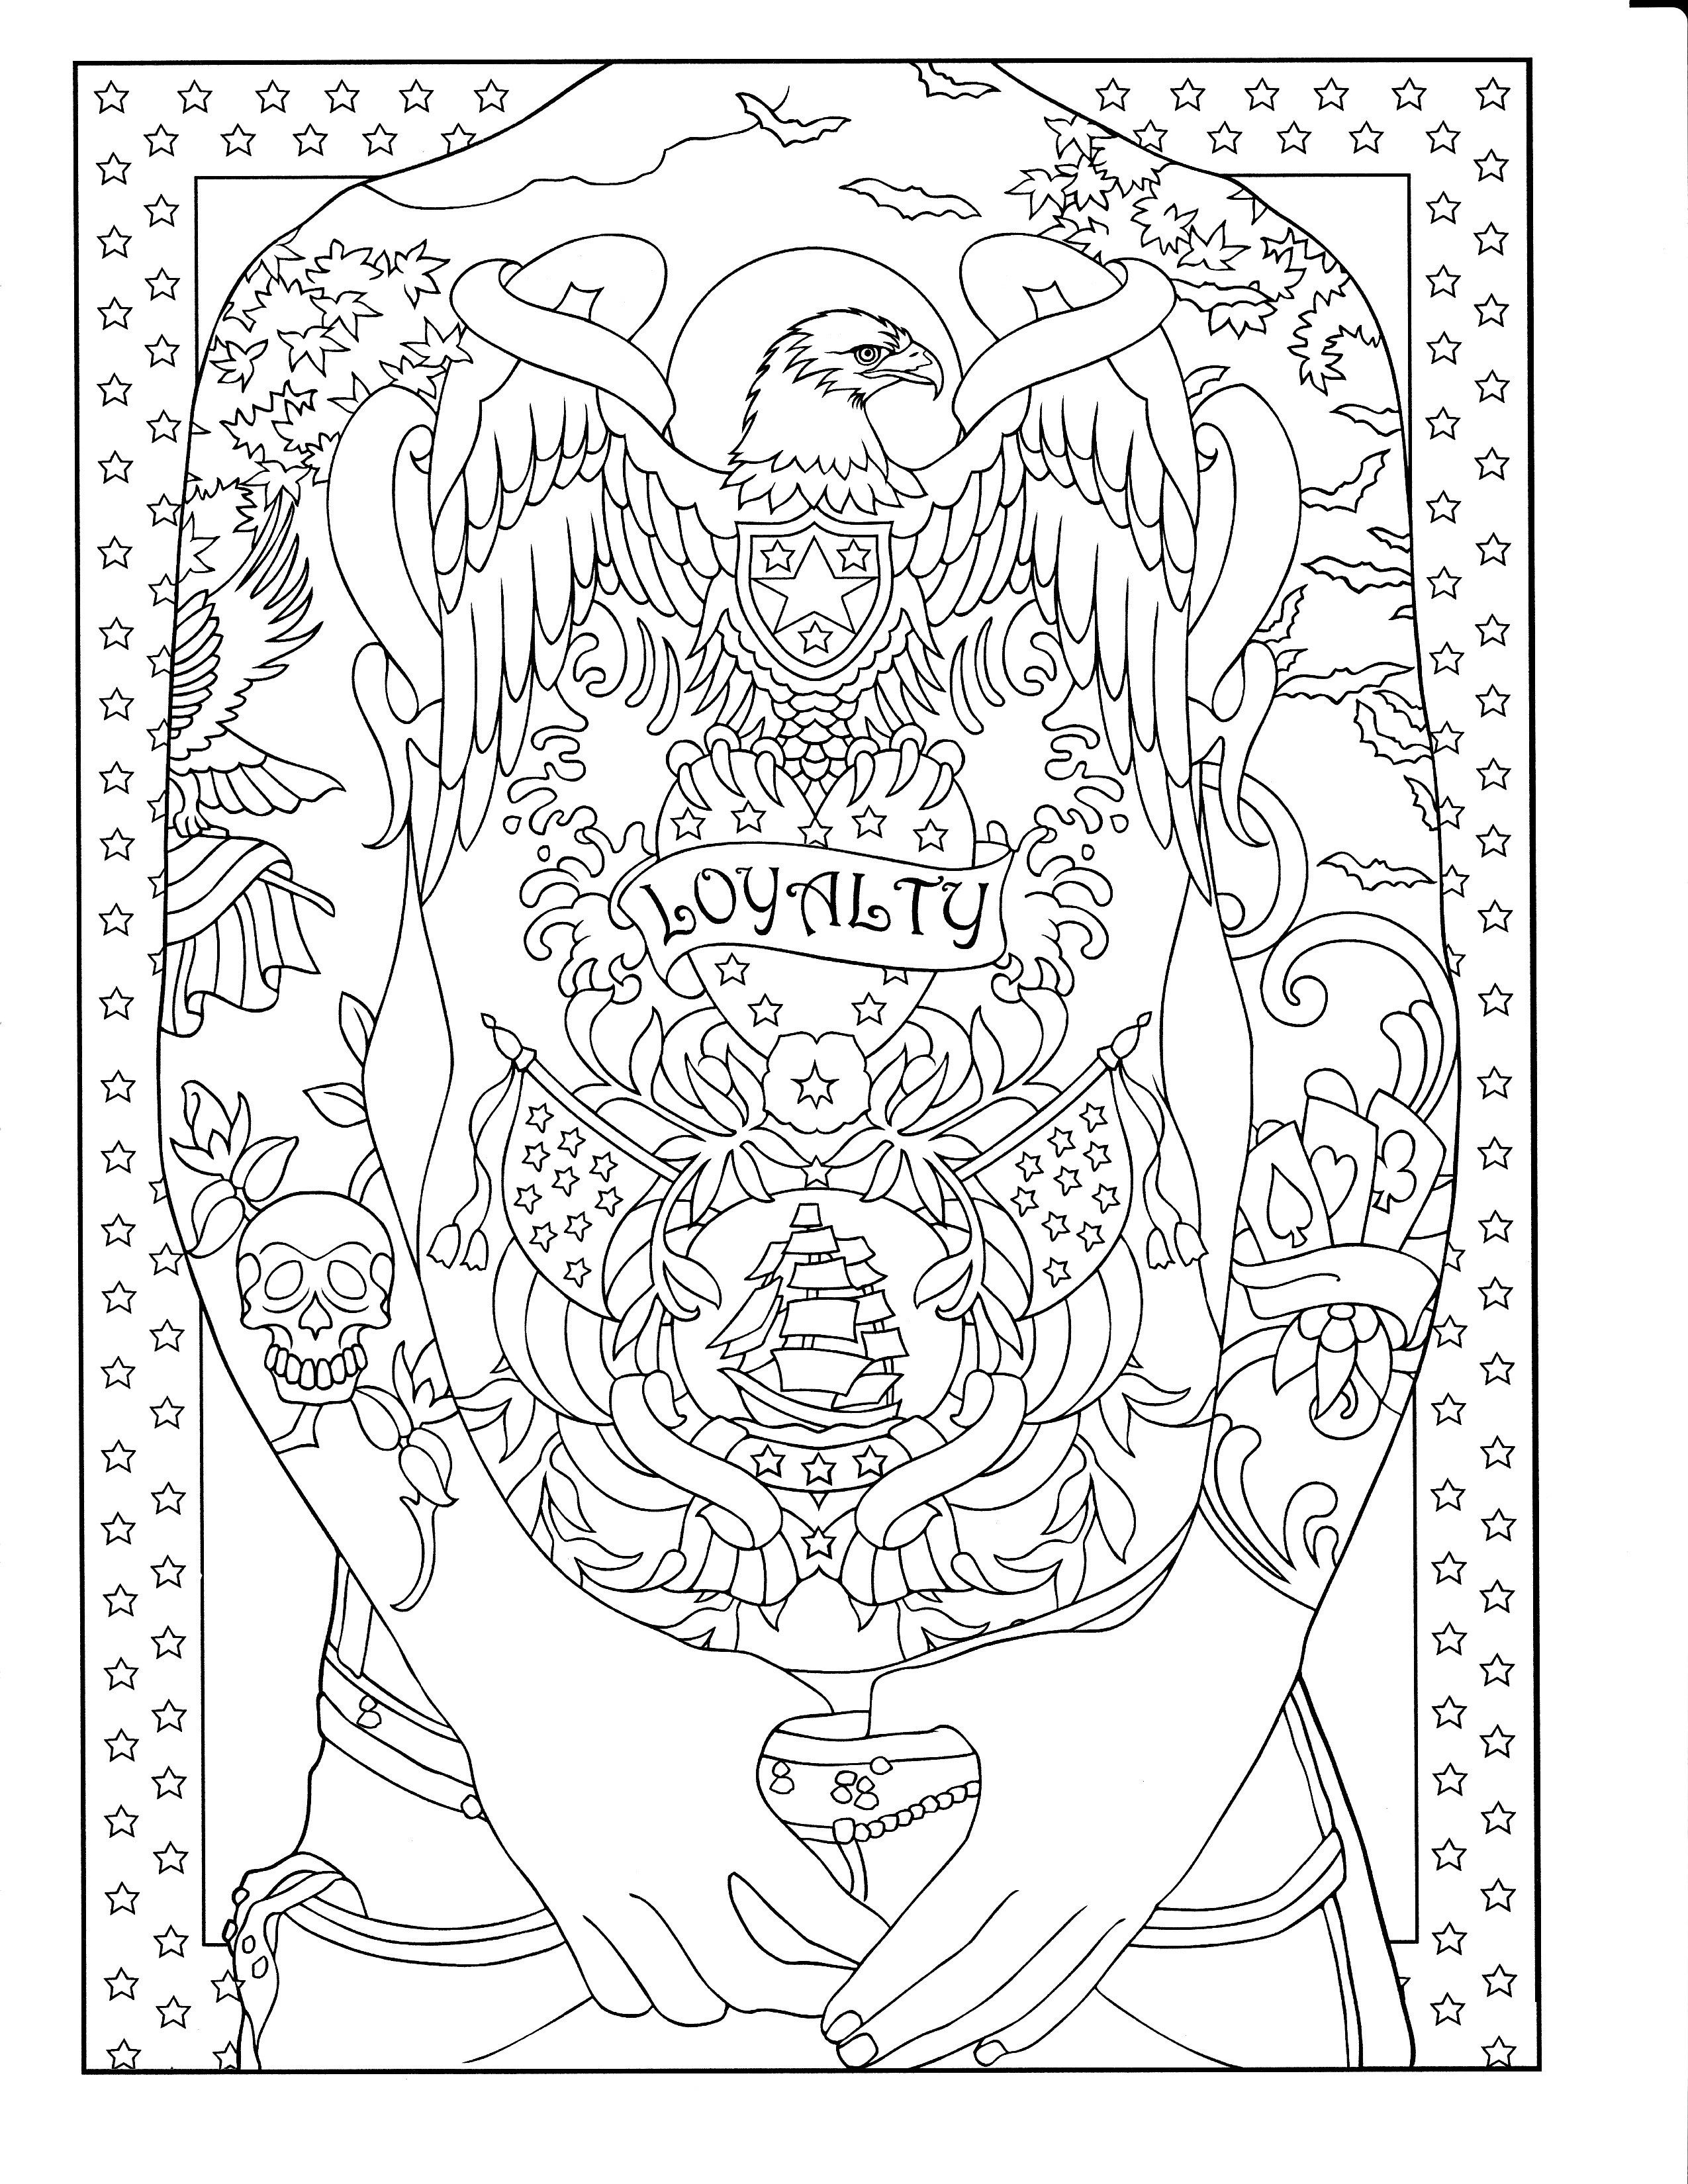 - Printable Coloring Page Tattoo Coloring Book, Designs Coloring